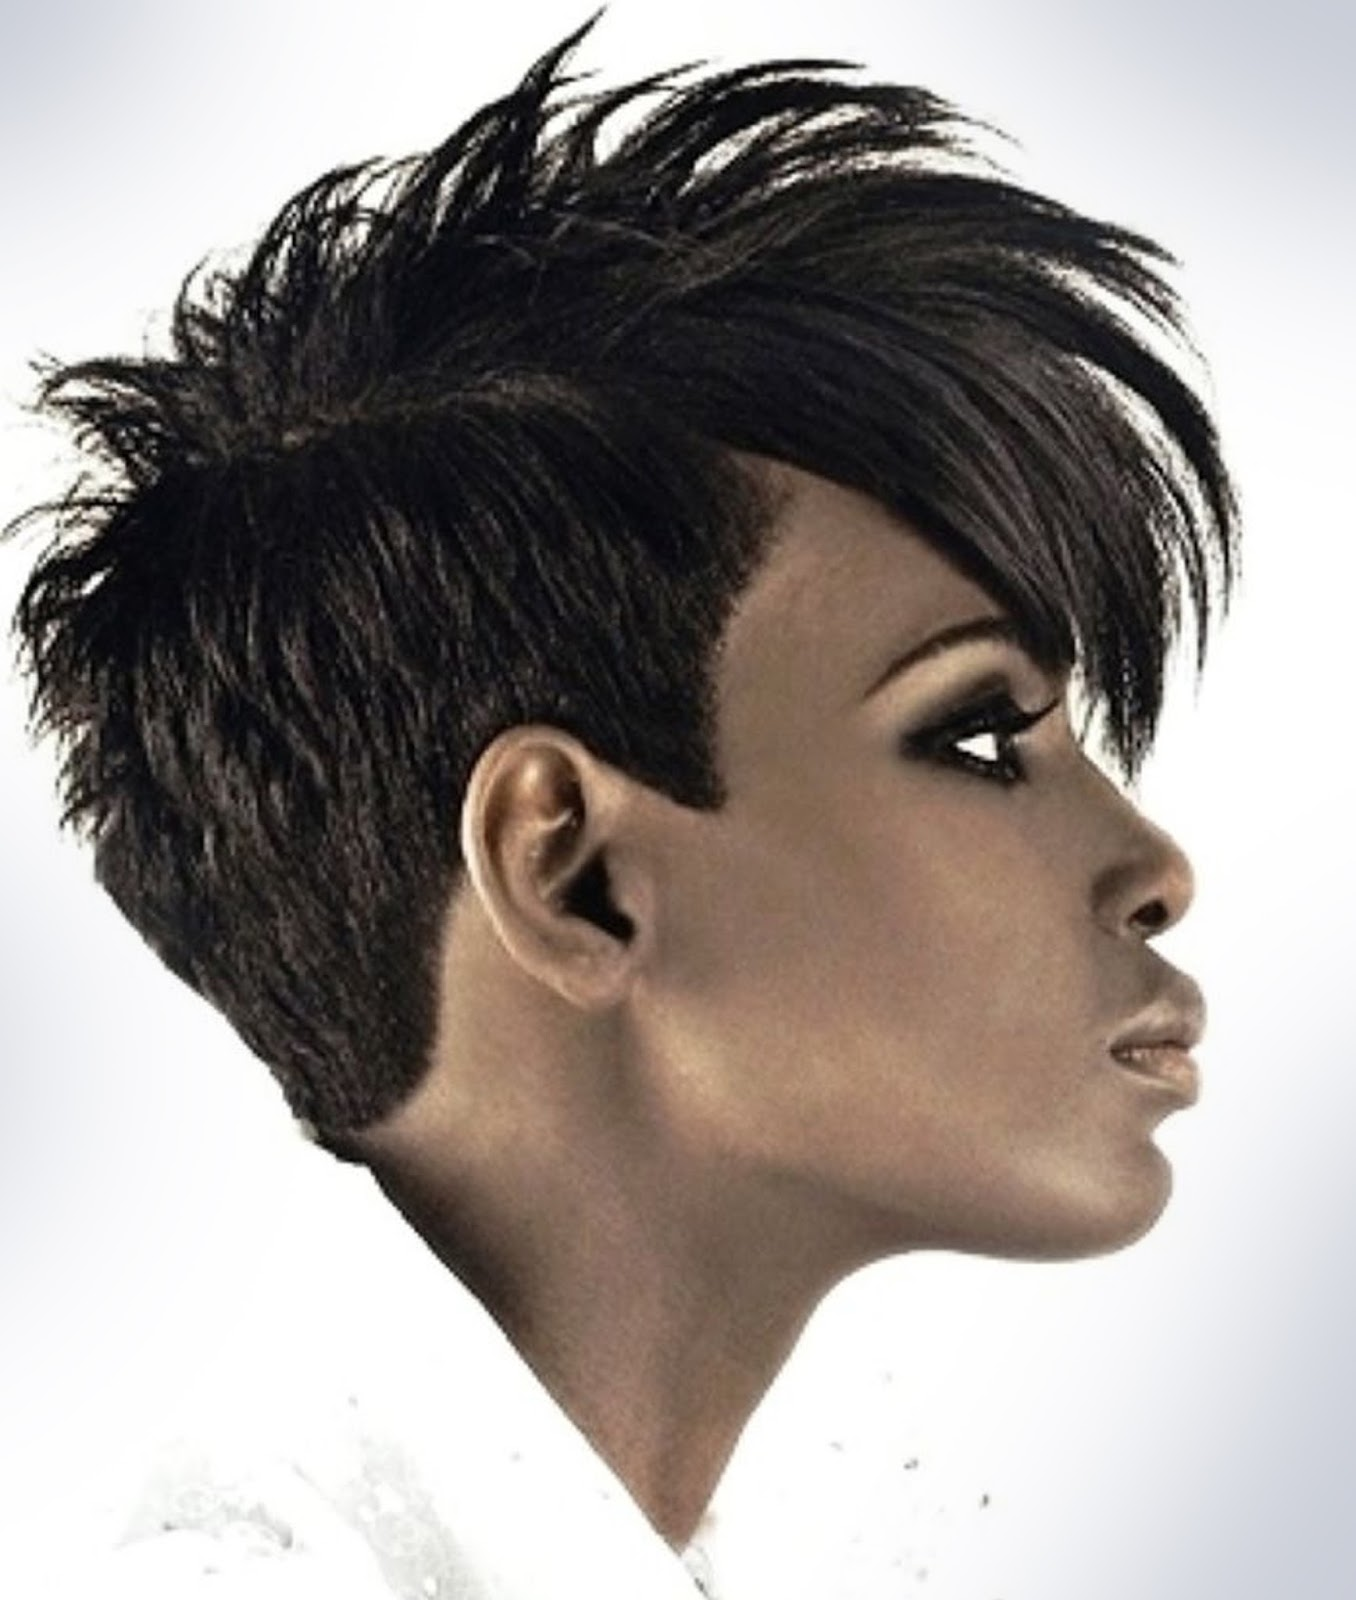 styling black hair 5 stunning haircuts american cruckers 2111